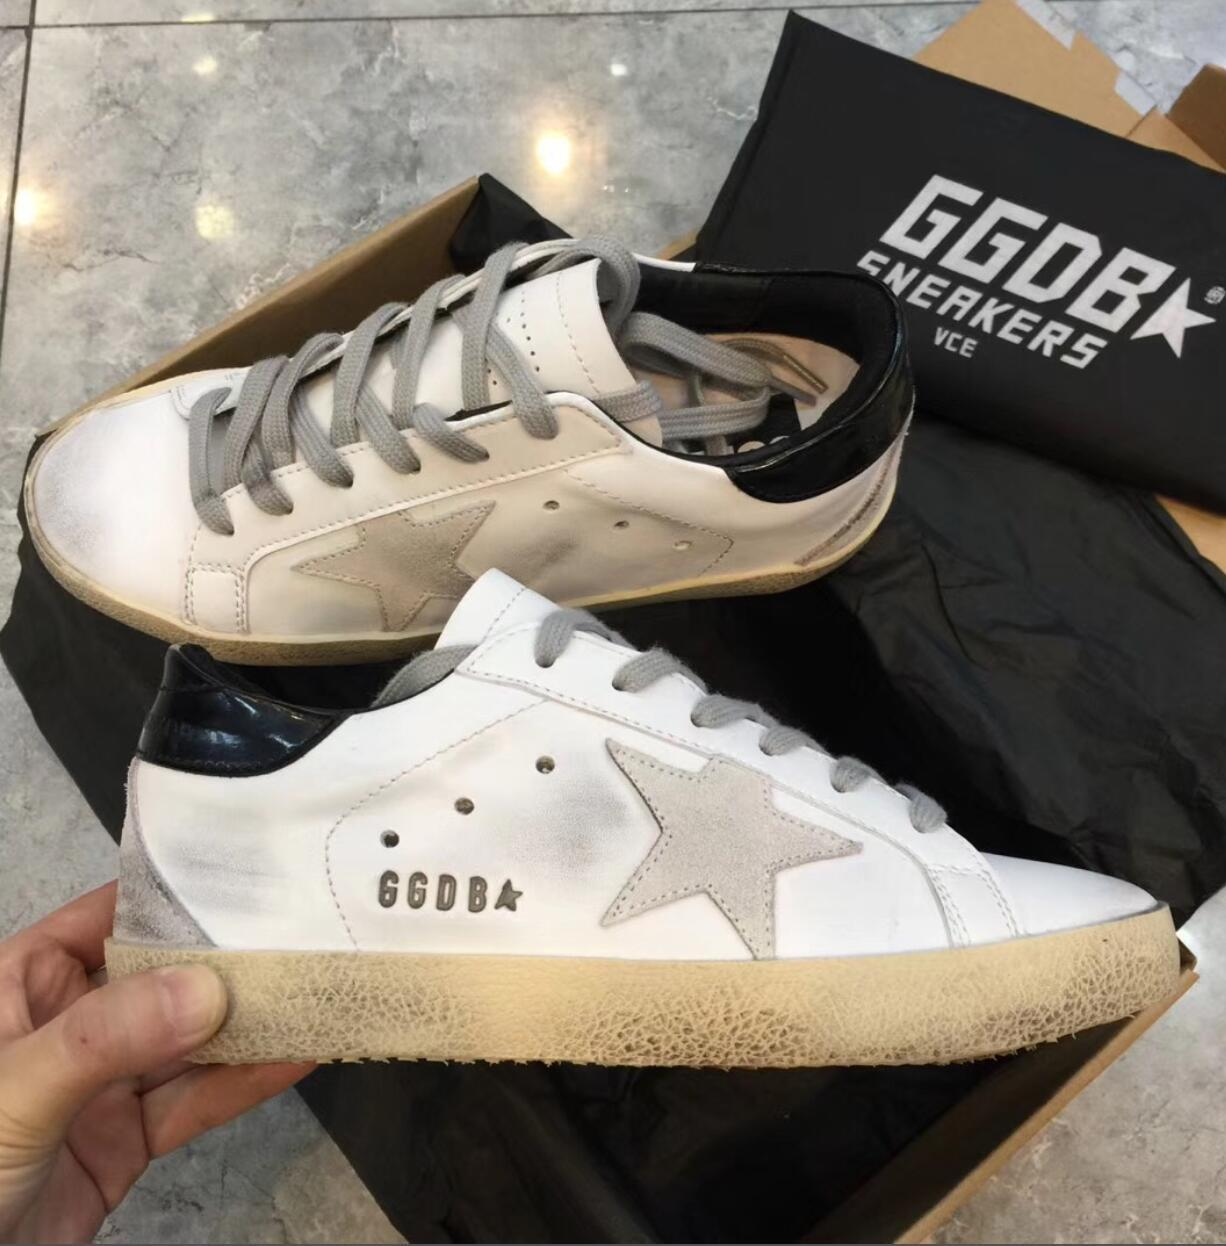 on sale 3b18d 65447 sale sneakers geox cjqo66 w style sneakers Genuine Leather Villous Dermis  Casual Shoes Mens And Women Luxury Superstar trainer 30